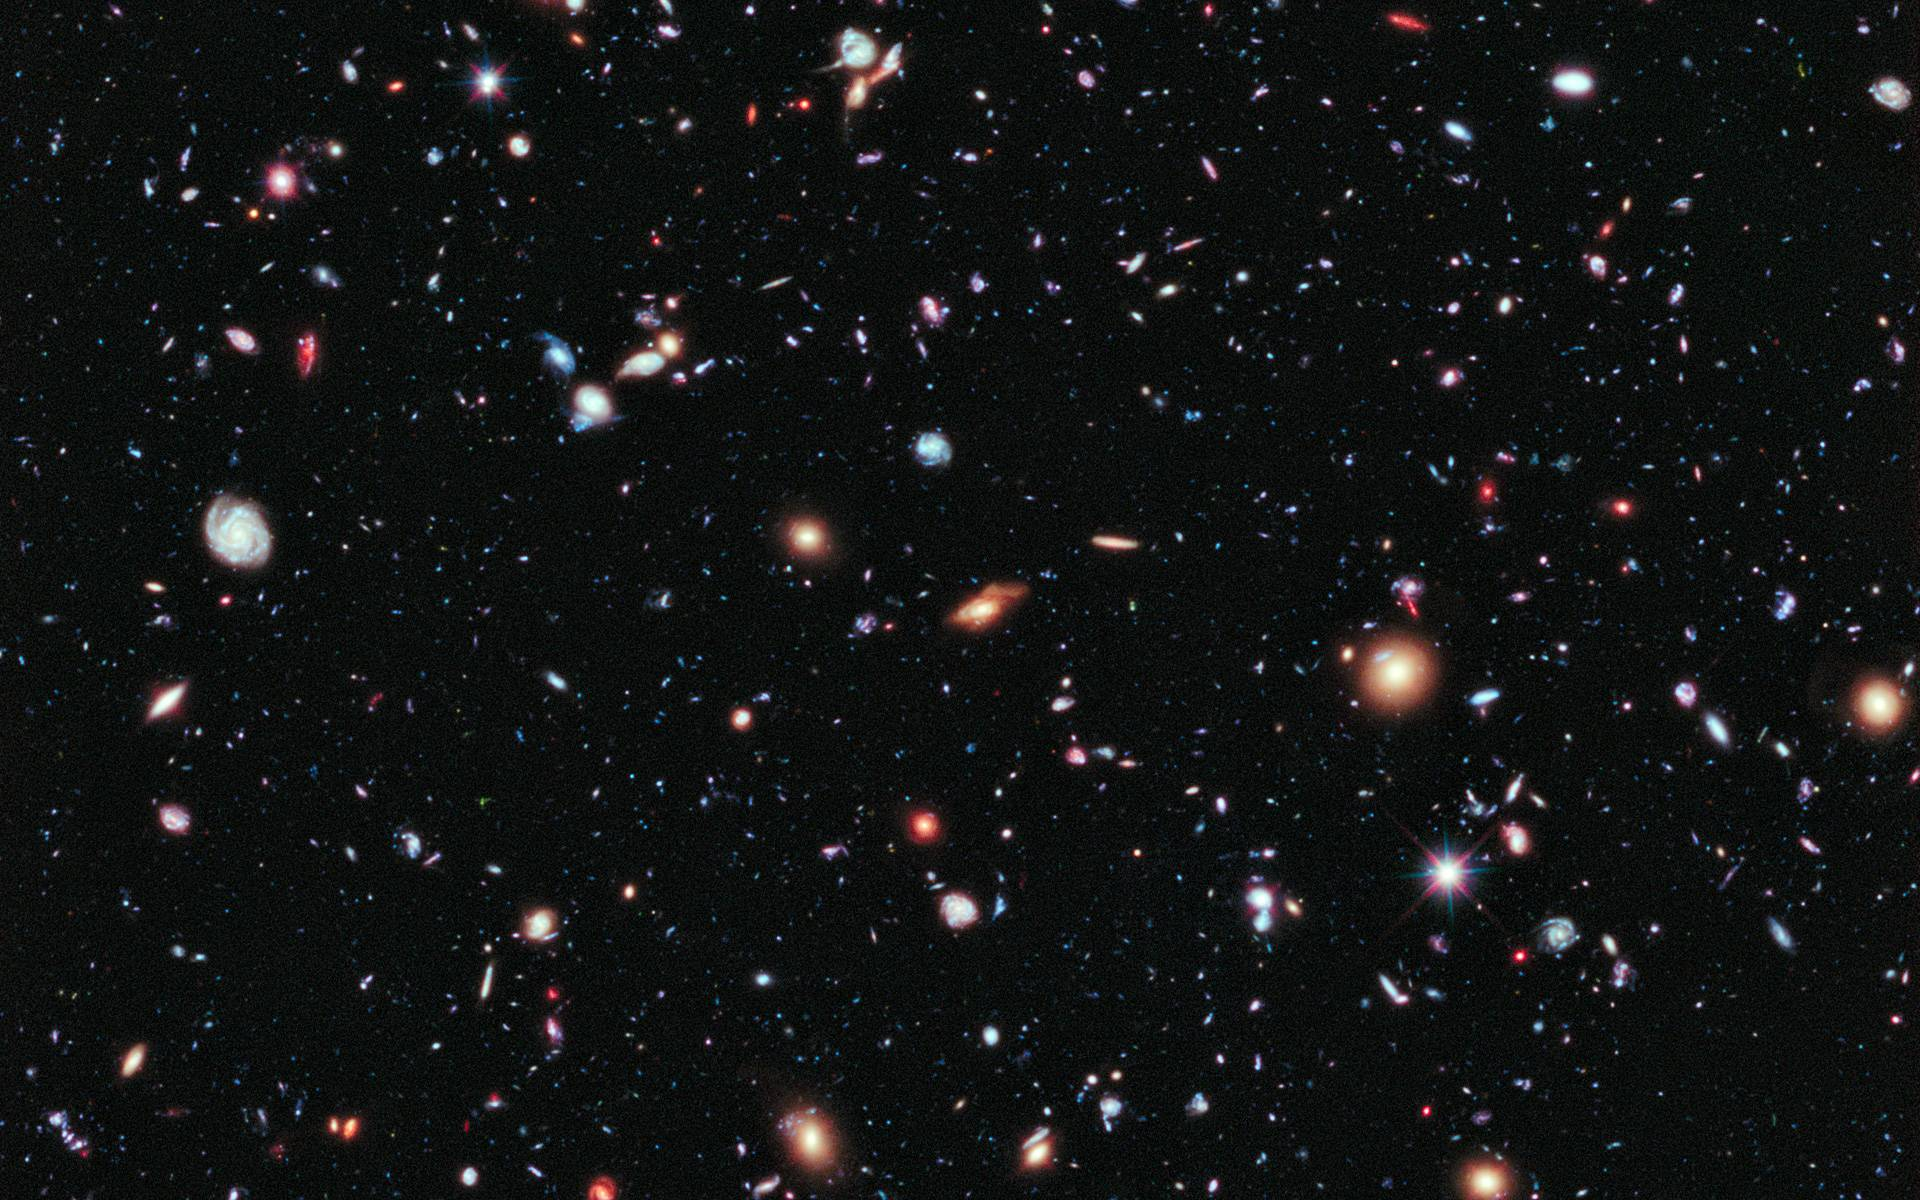 hubble deep field wallpaper 1600x1200-#13